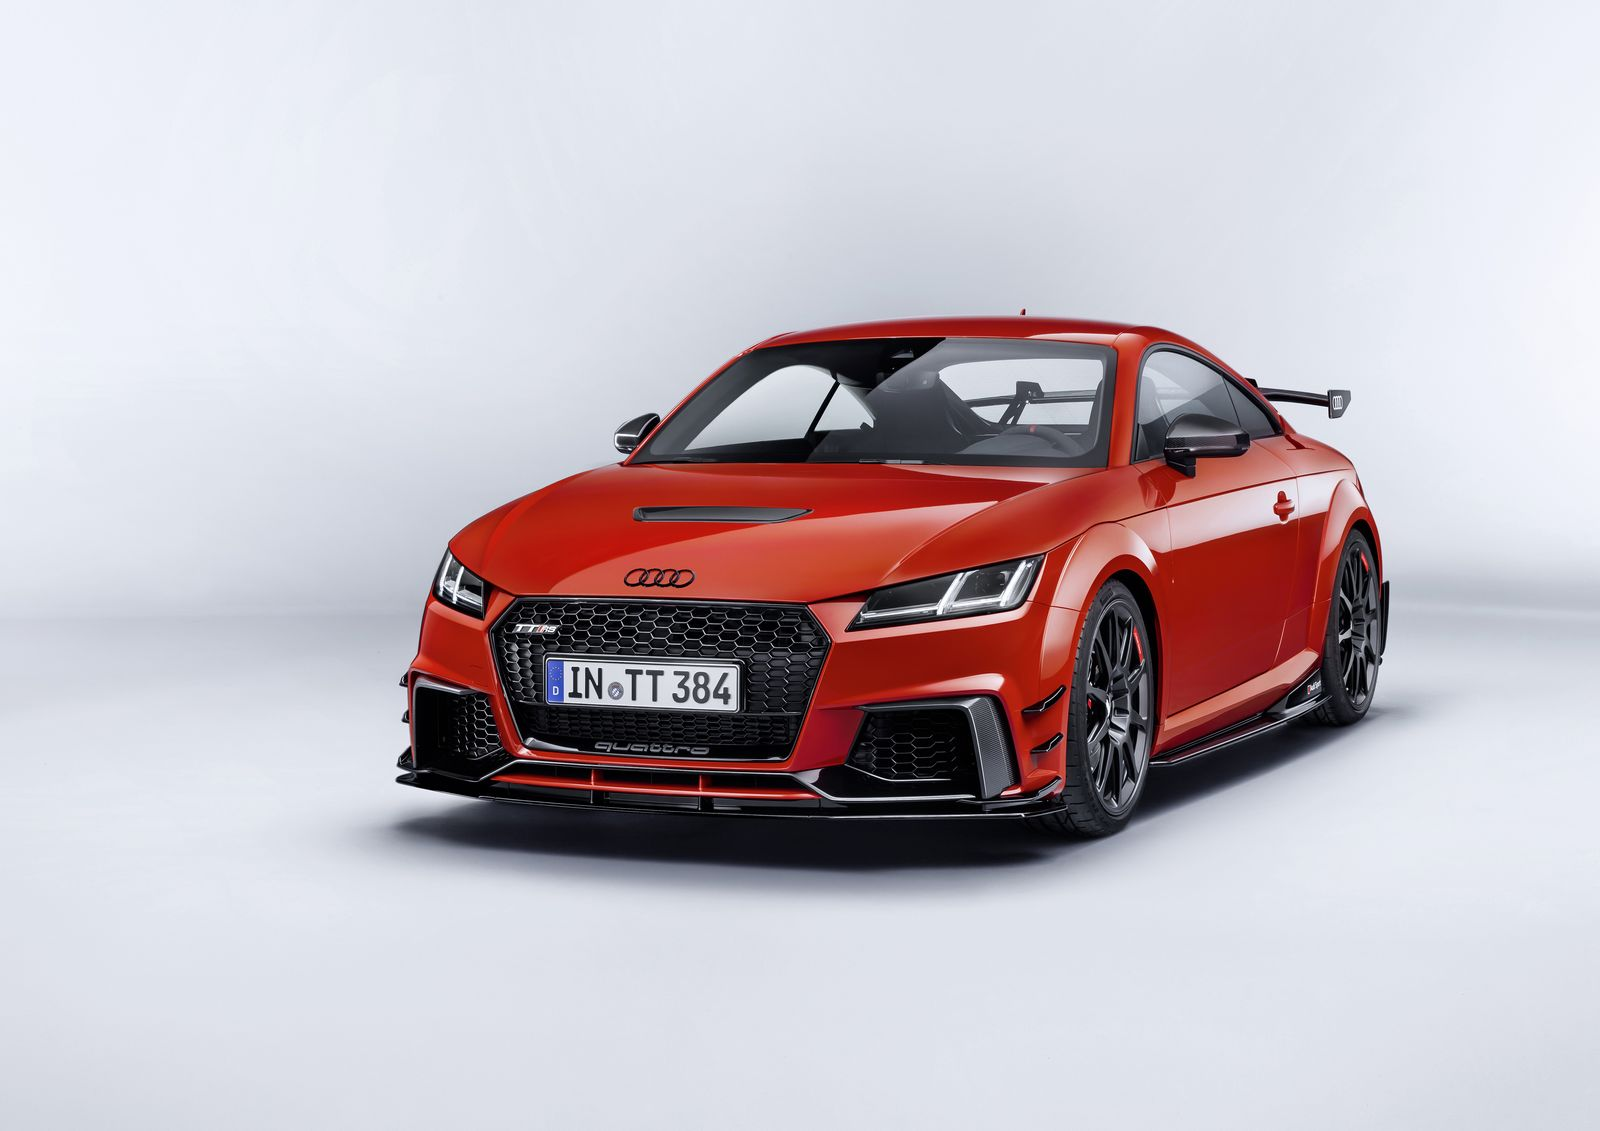 audi performance parts take r8 and tt rs to new heights carscoops. Black Bedroom Furniture Sets. Home Design Ideas